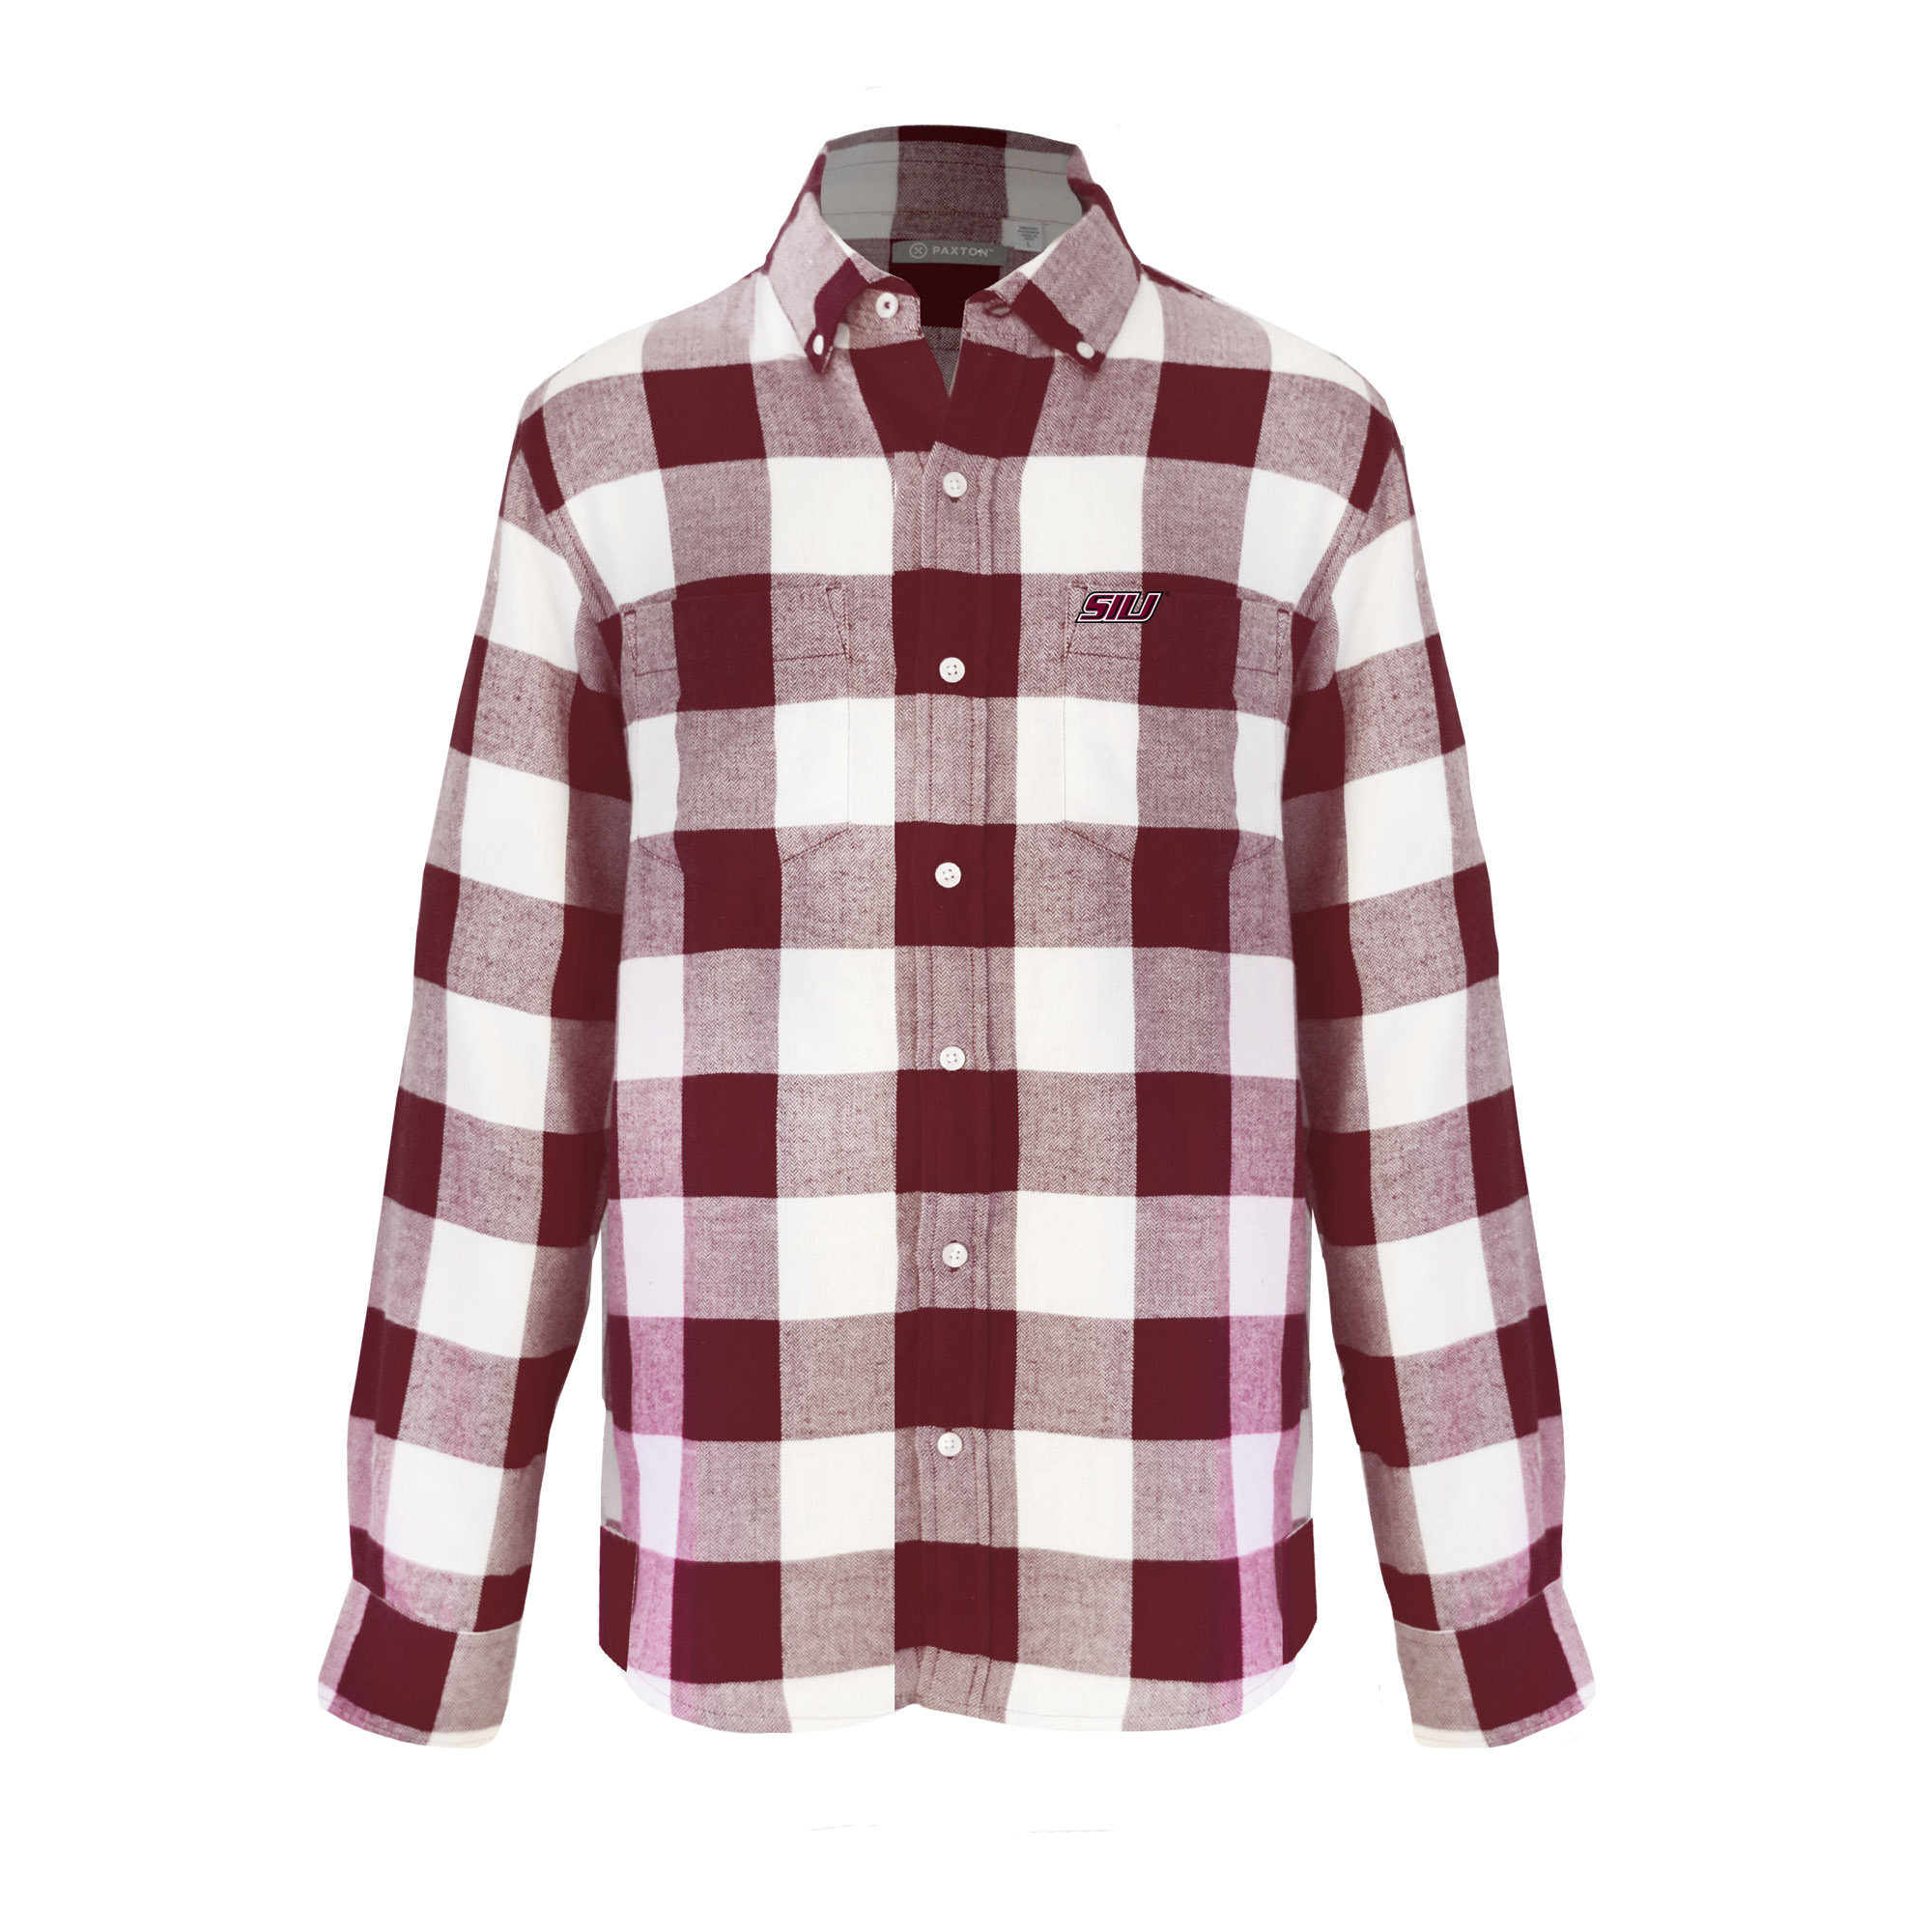 Image for the PAXTON® SIU CHECKERED COZY UPSLOPE LONG SLEEVE product